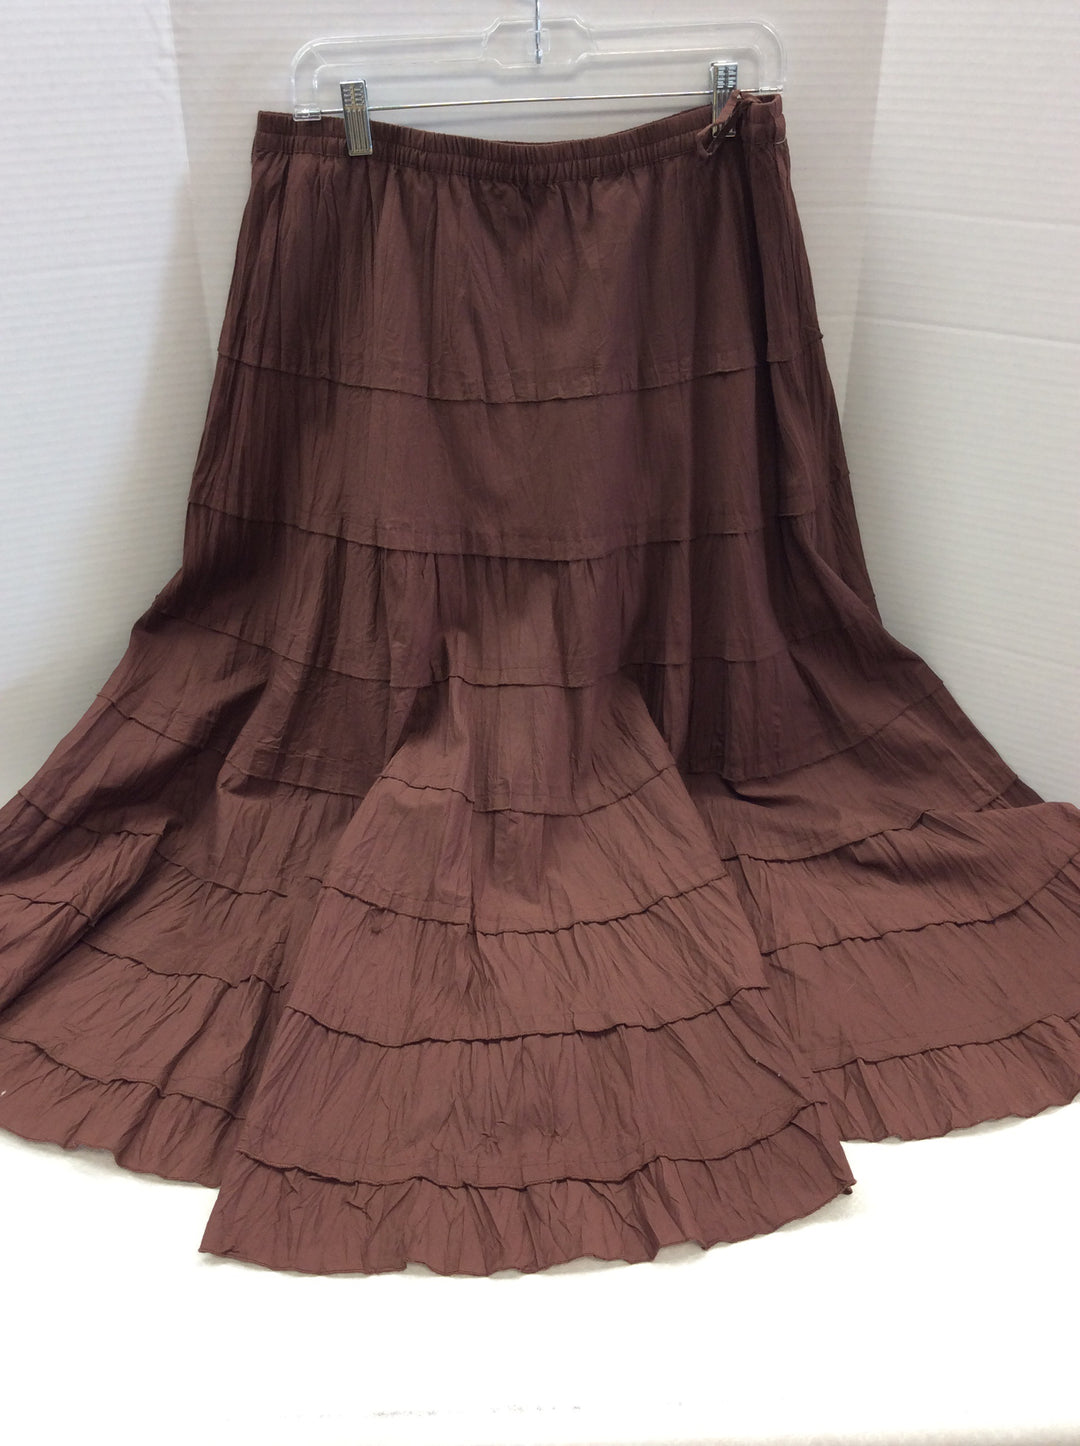 Primary Photo - BRAND: MULTIPLES <BR>STYLE: SKIRT <BR>COLOR: BROWN <BR>SIZE: L <BR>SKU: 133-13374-1621<BR>BEAUTIFUL FULL RUSTY BROWN SKIRT. LOOKS GREAT WITH BOOTS! SEE IT STYLED IN LAST PHOTOS ( ITEMS IN THE STYLES PHOTS ARE SOLD SEPARATELY AND ARE NOT INCLUDED IN THE SALE OF THE SKIRT)